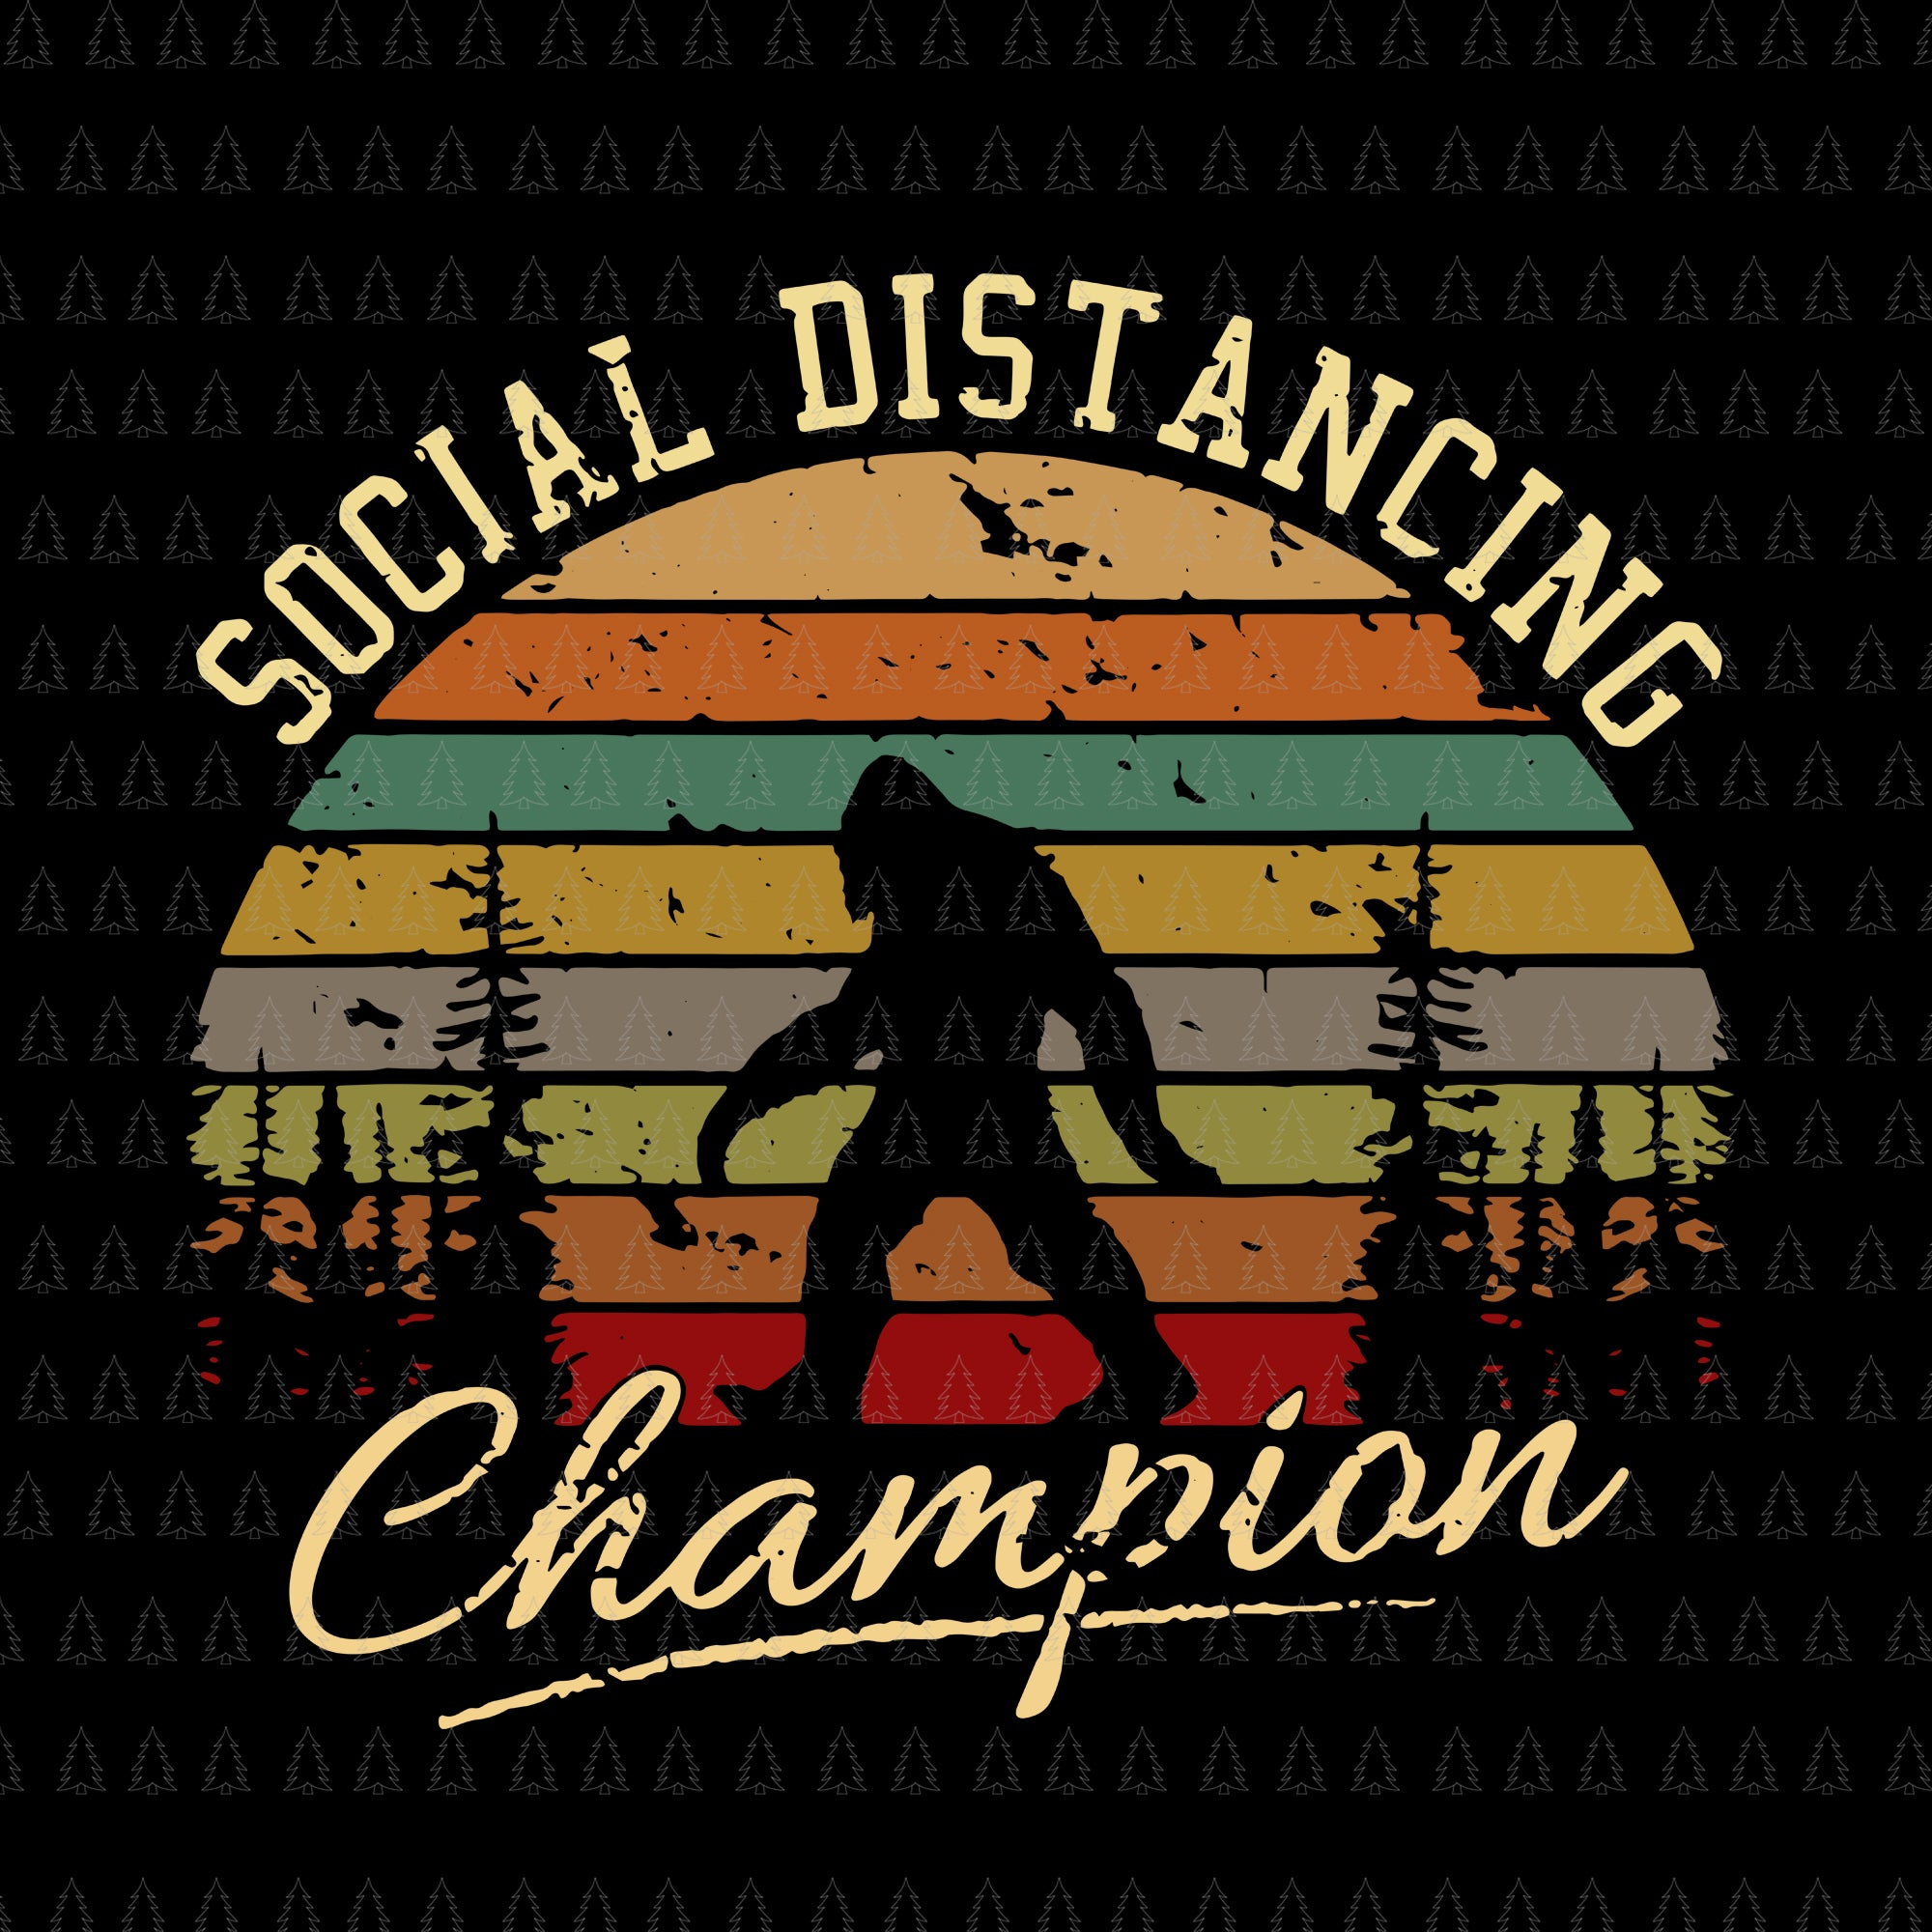 Social distancing champion funny bigfoot toilet paper svg, social distancing champion funny bigfoot toilet paper,  social distancing champion svg, png, eps, dxf file